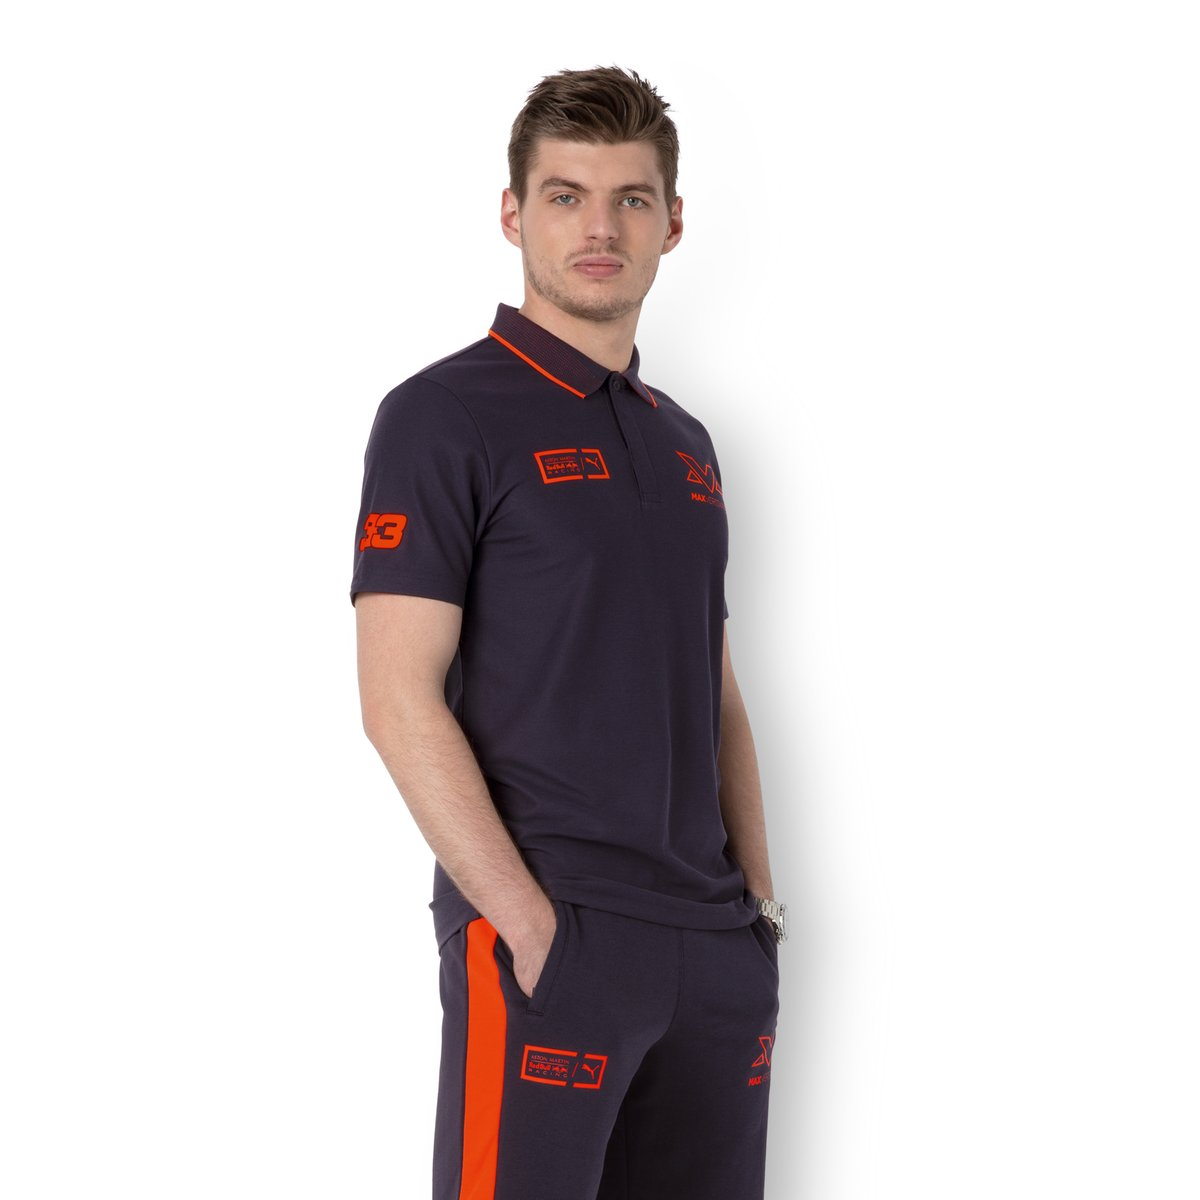 NEW! The official Max Verstappen shop proudly presents the MV collection 2020: now exclusively available on https://t.co/kyHXo7WWKy #VerstappenShop https://t.co/ImQaH0Nz4a